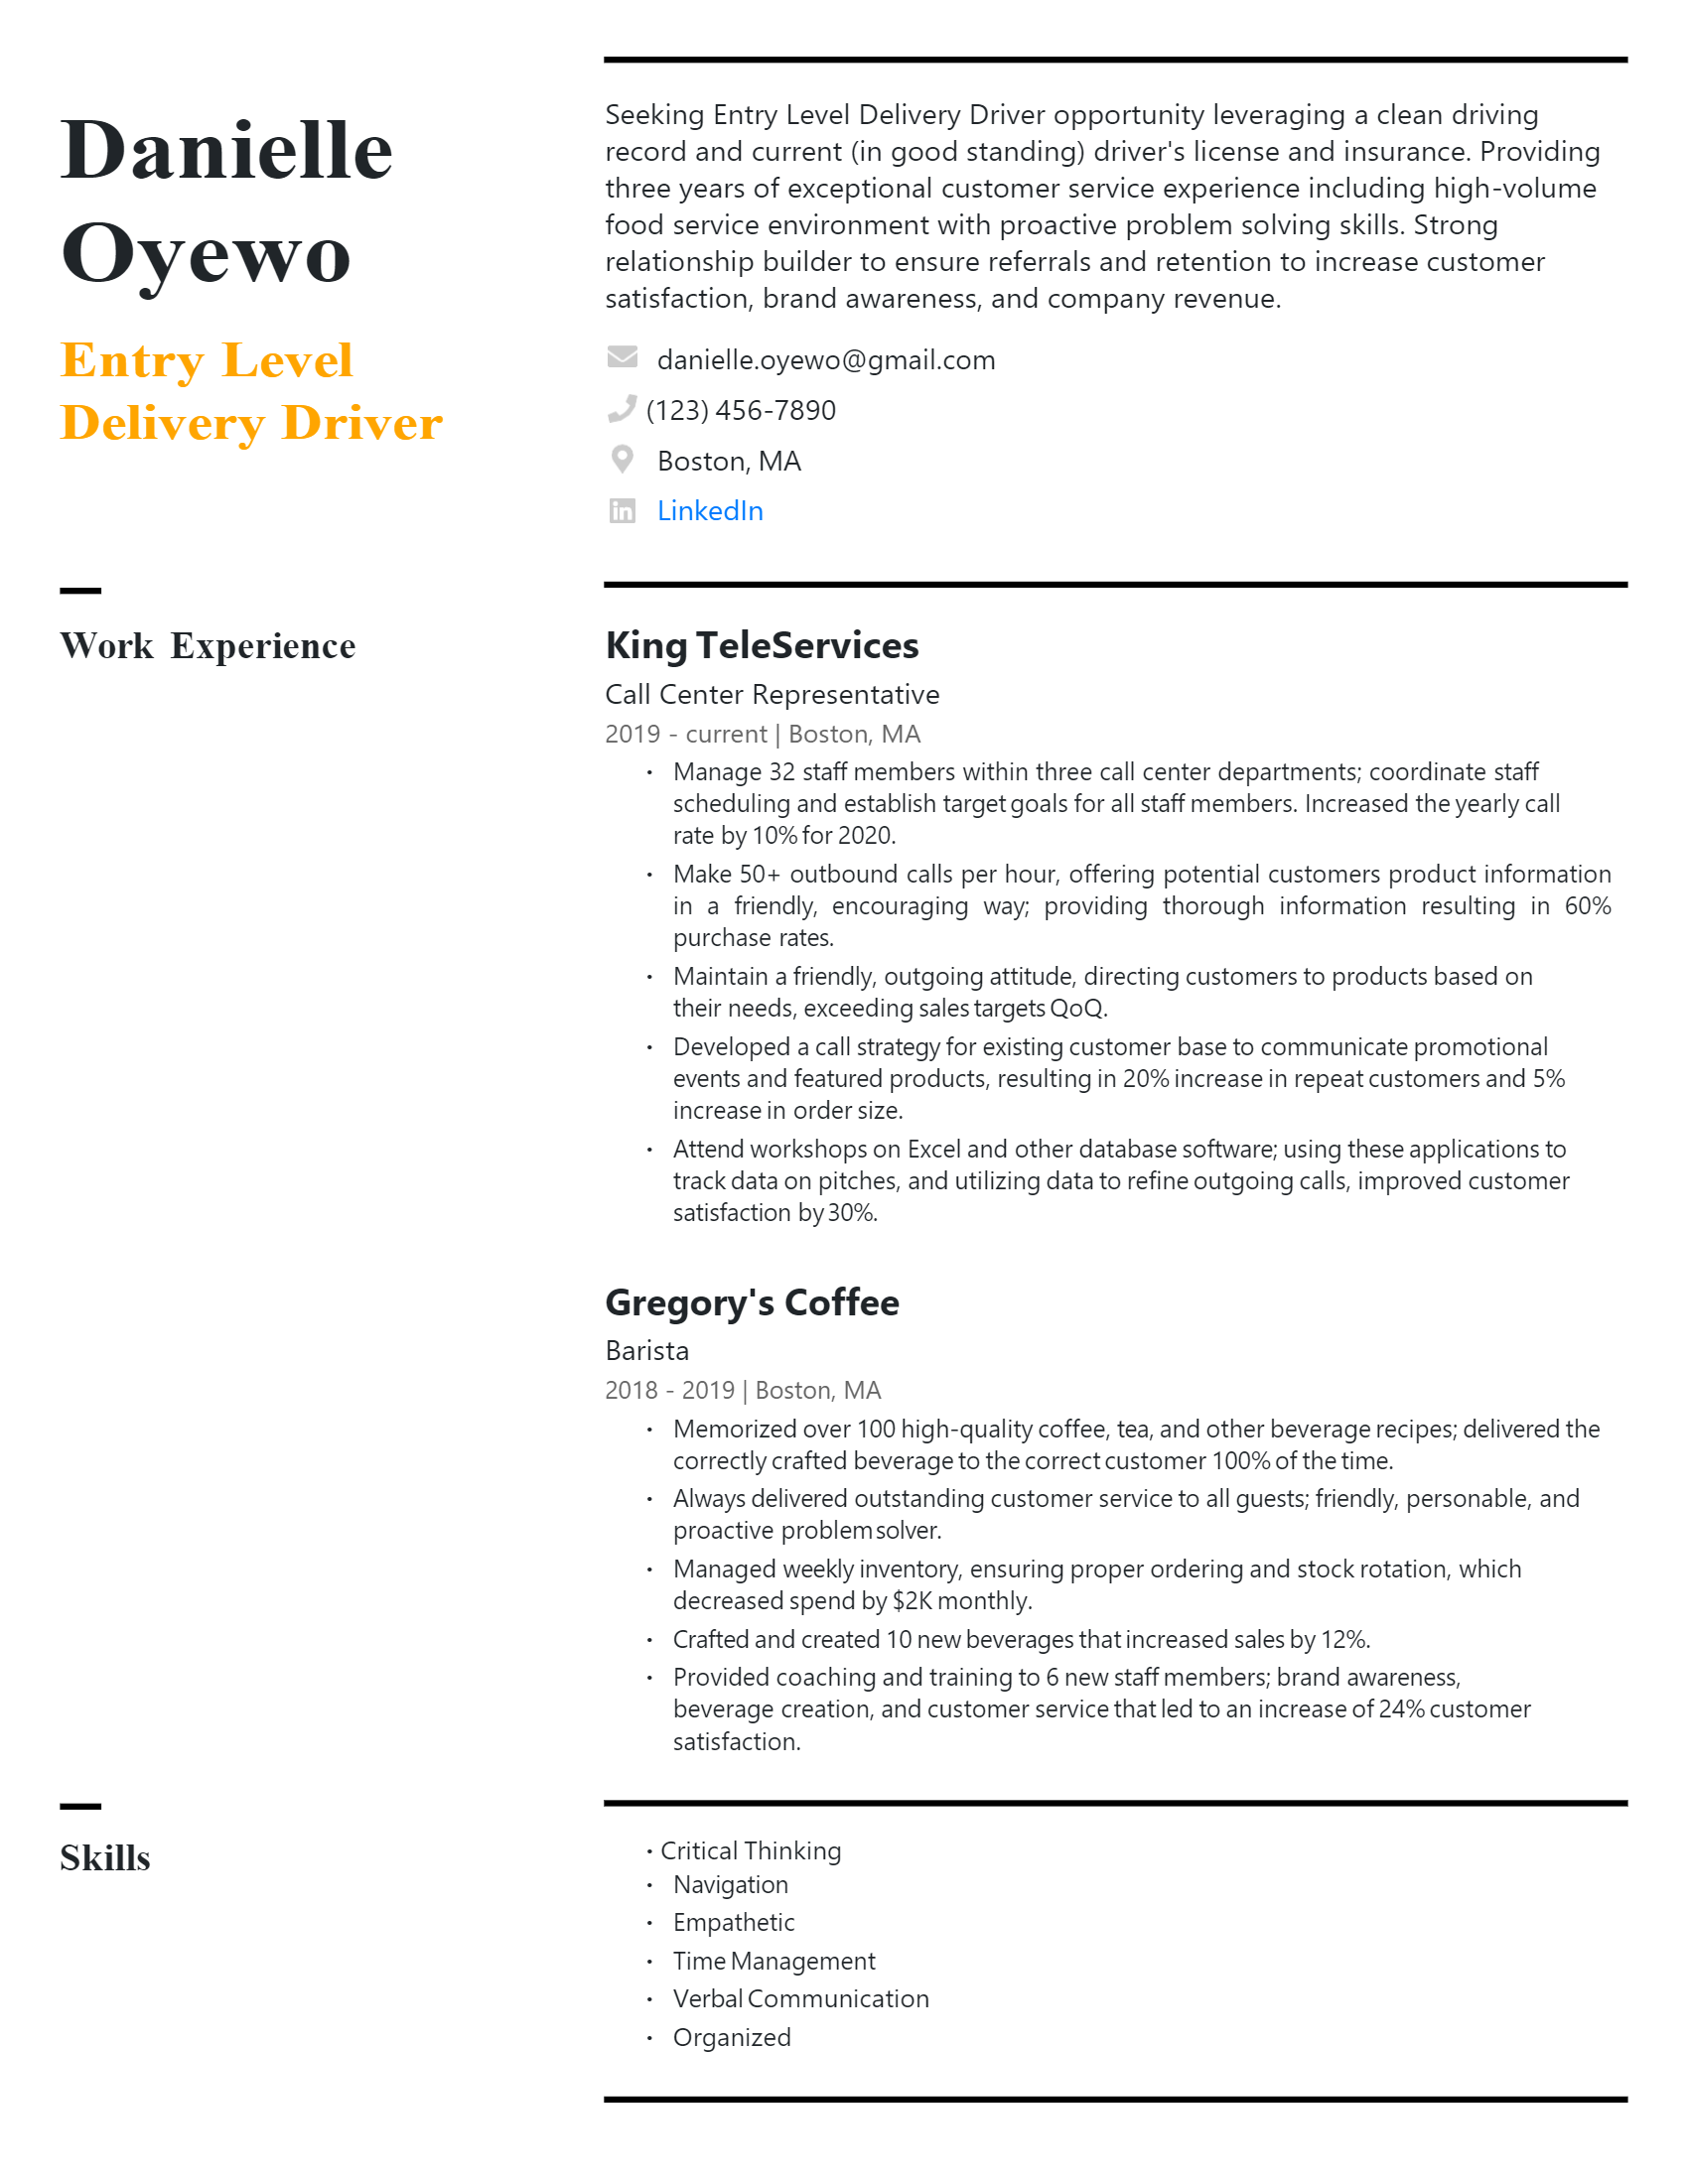 Entry-level Delivery Driver Resume